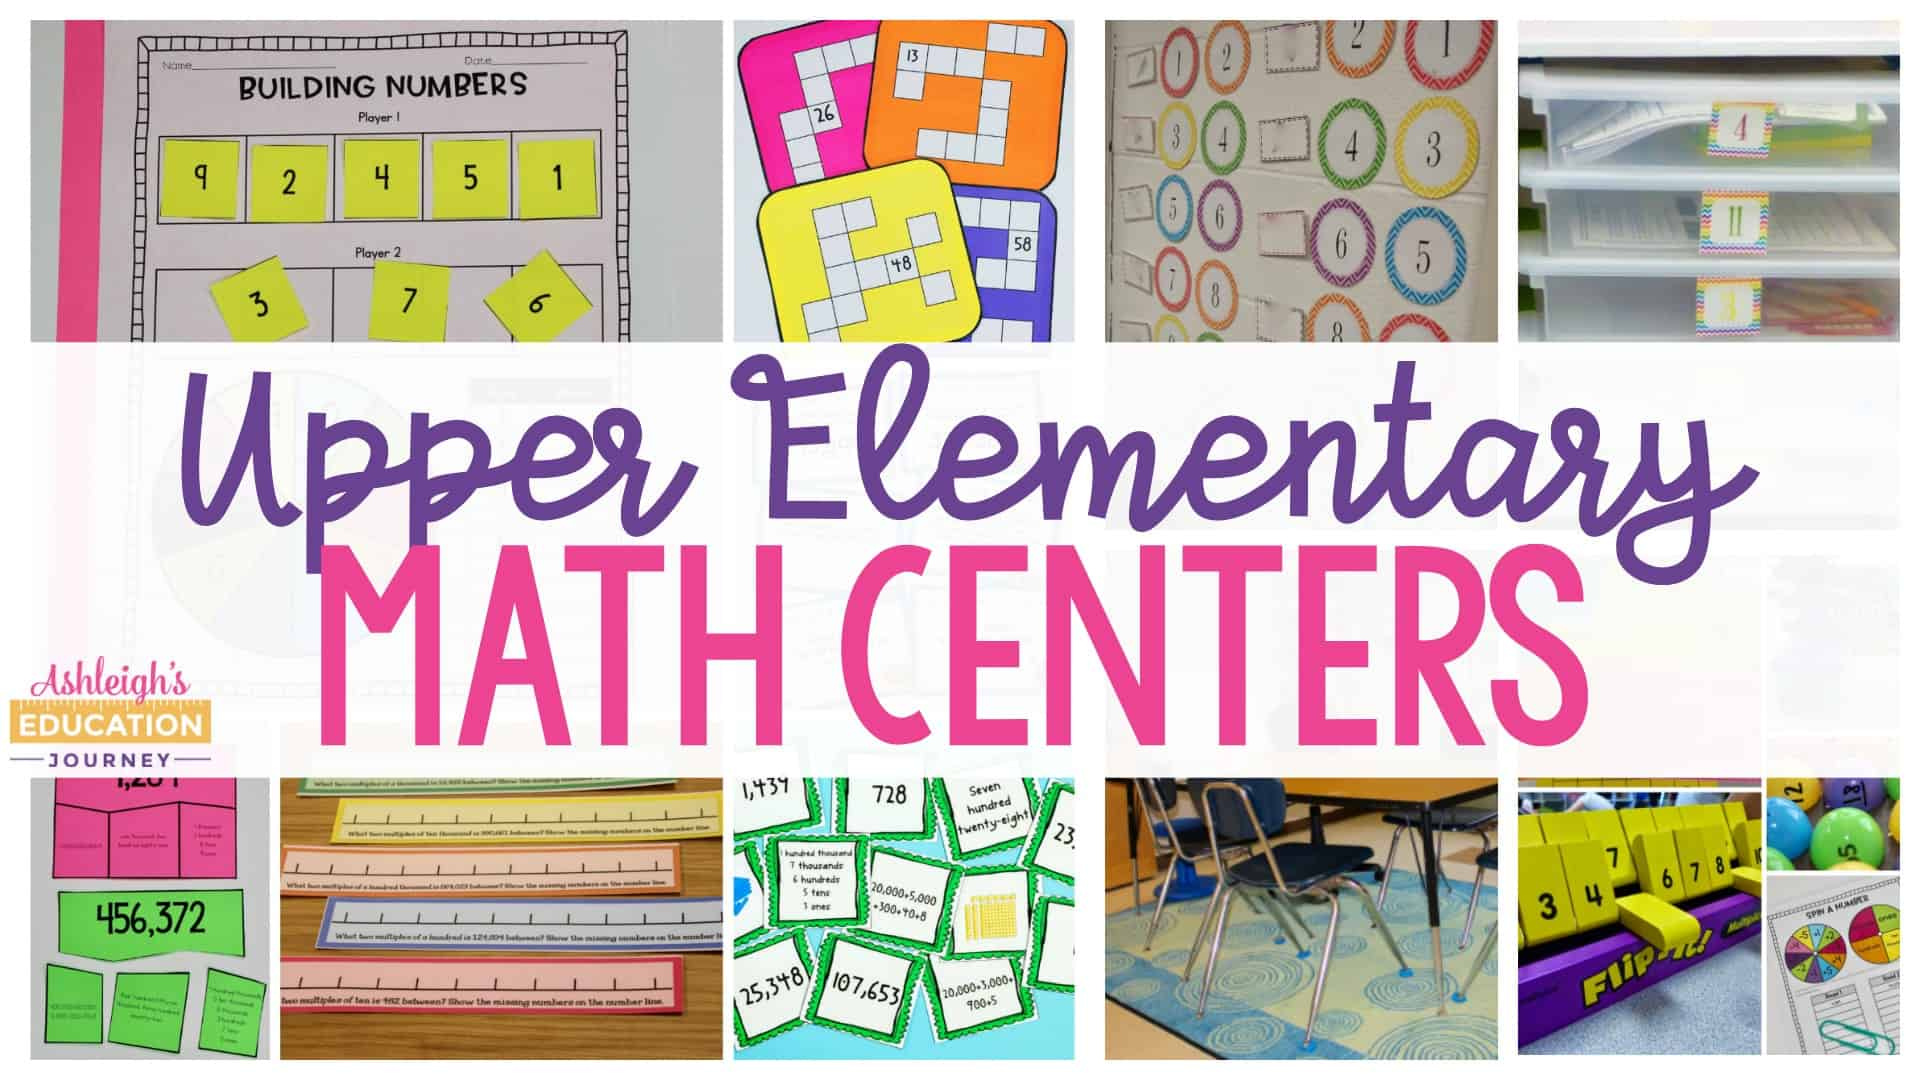 Upper Elementary Math Centers graphic with several colorful math activities and worksheets.